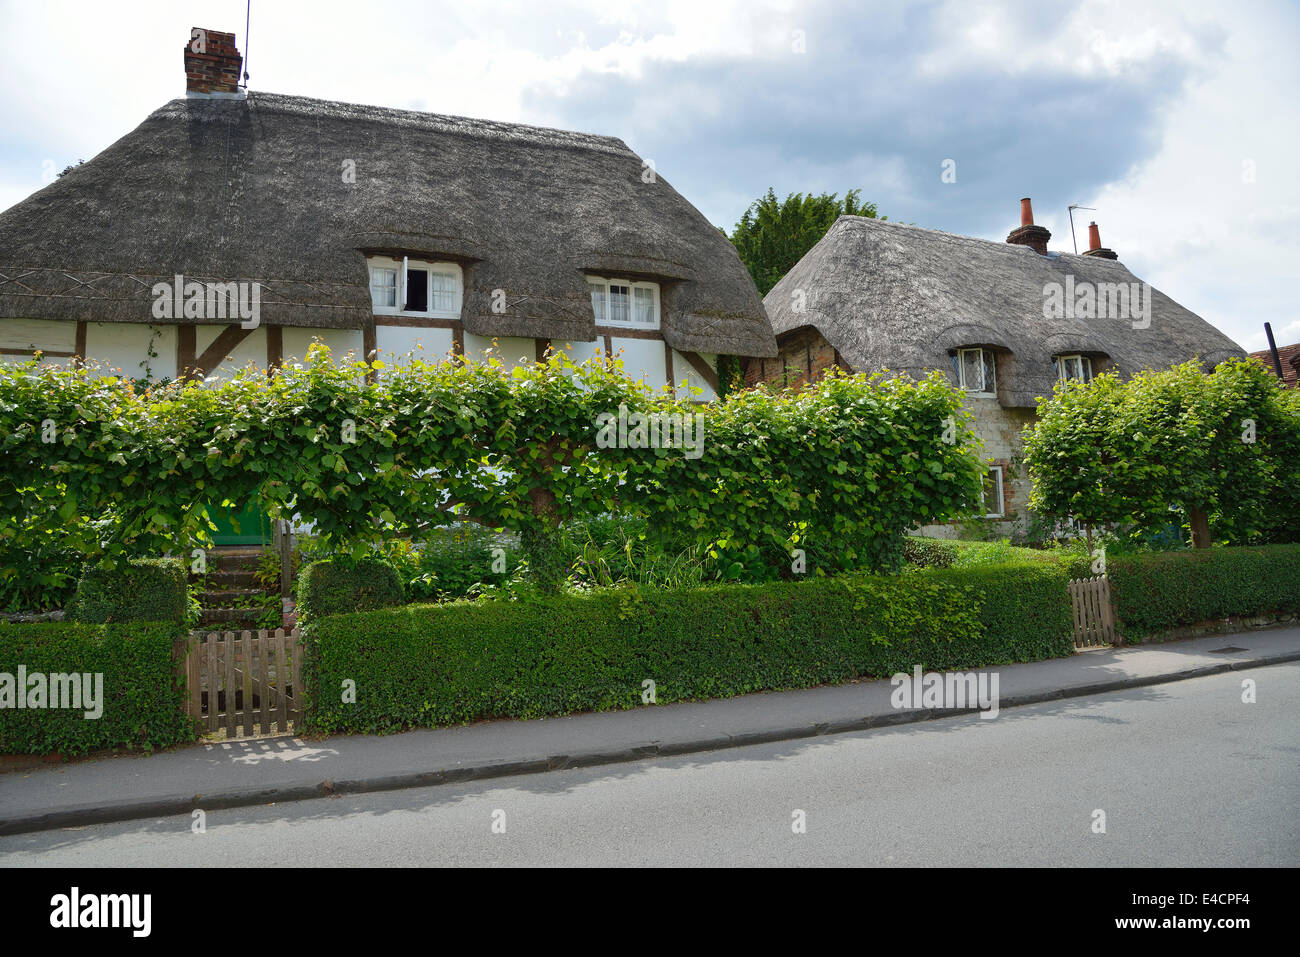 Thatched country cottages in the village of  Selborne, Hampshire, England, UK Stock Photo